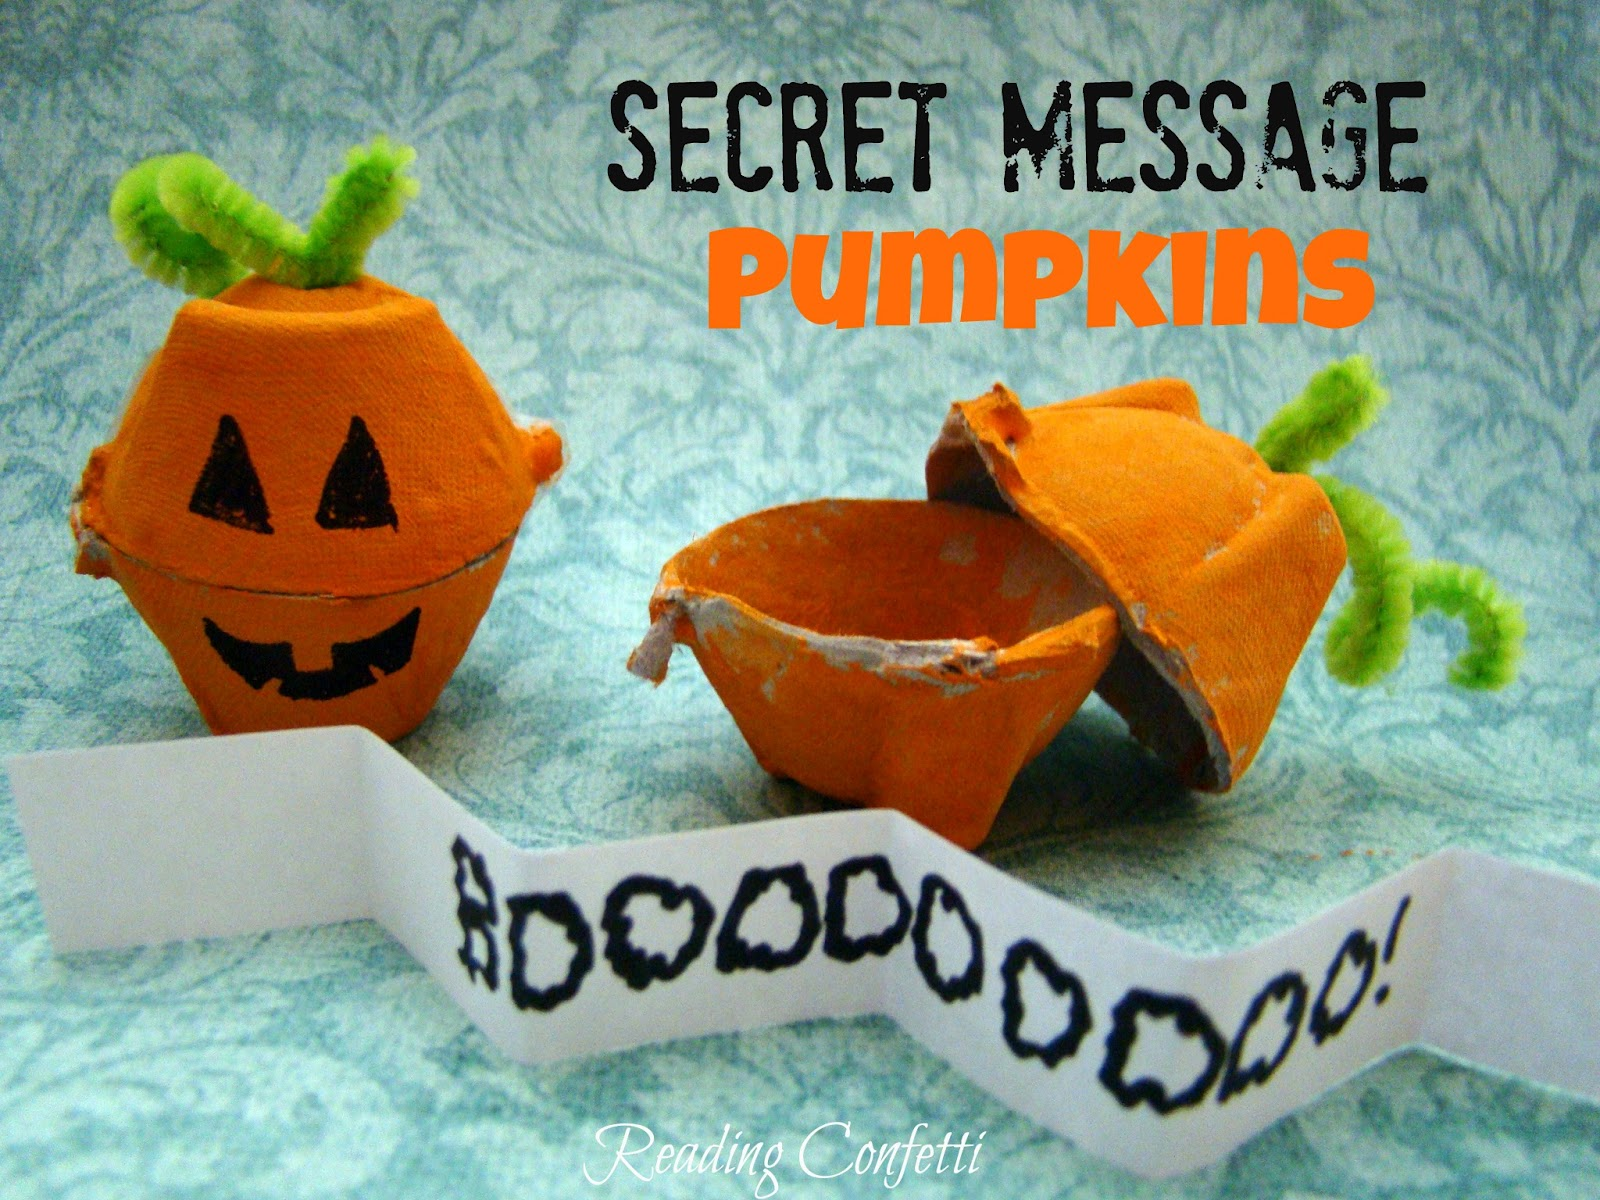 Secret Message Pumpkins Reading Confetti